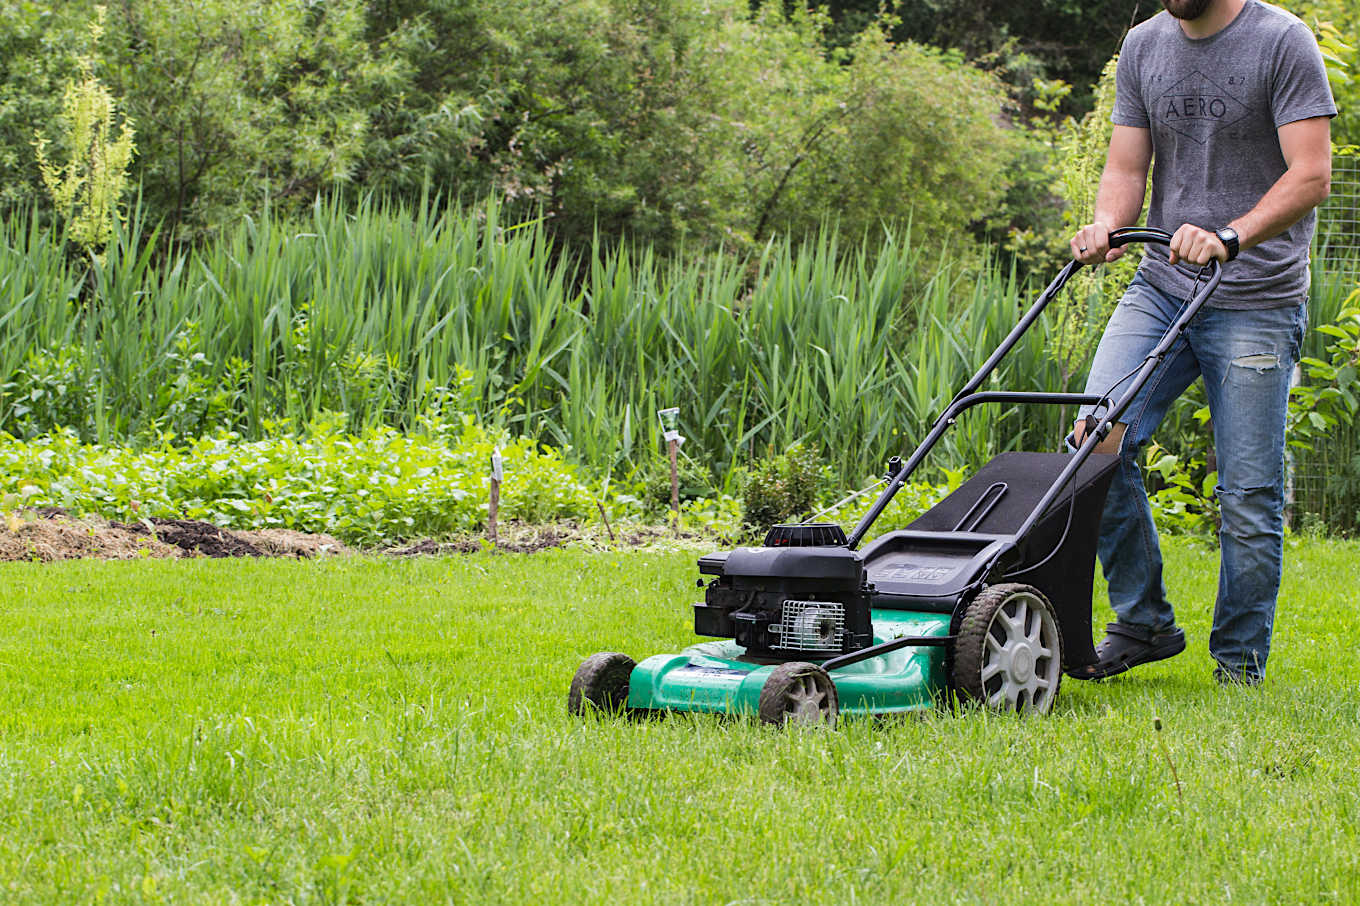 Are mowing and weeding exercise